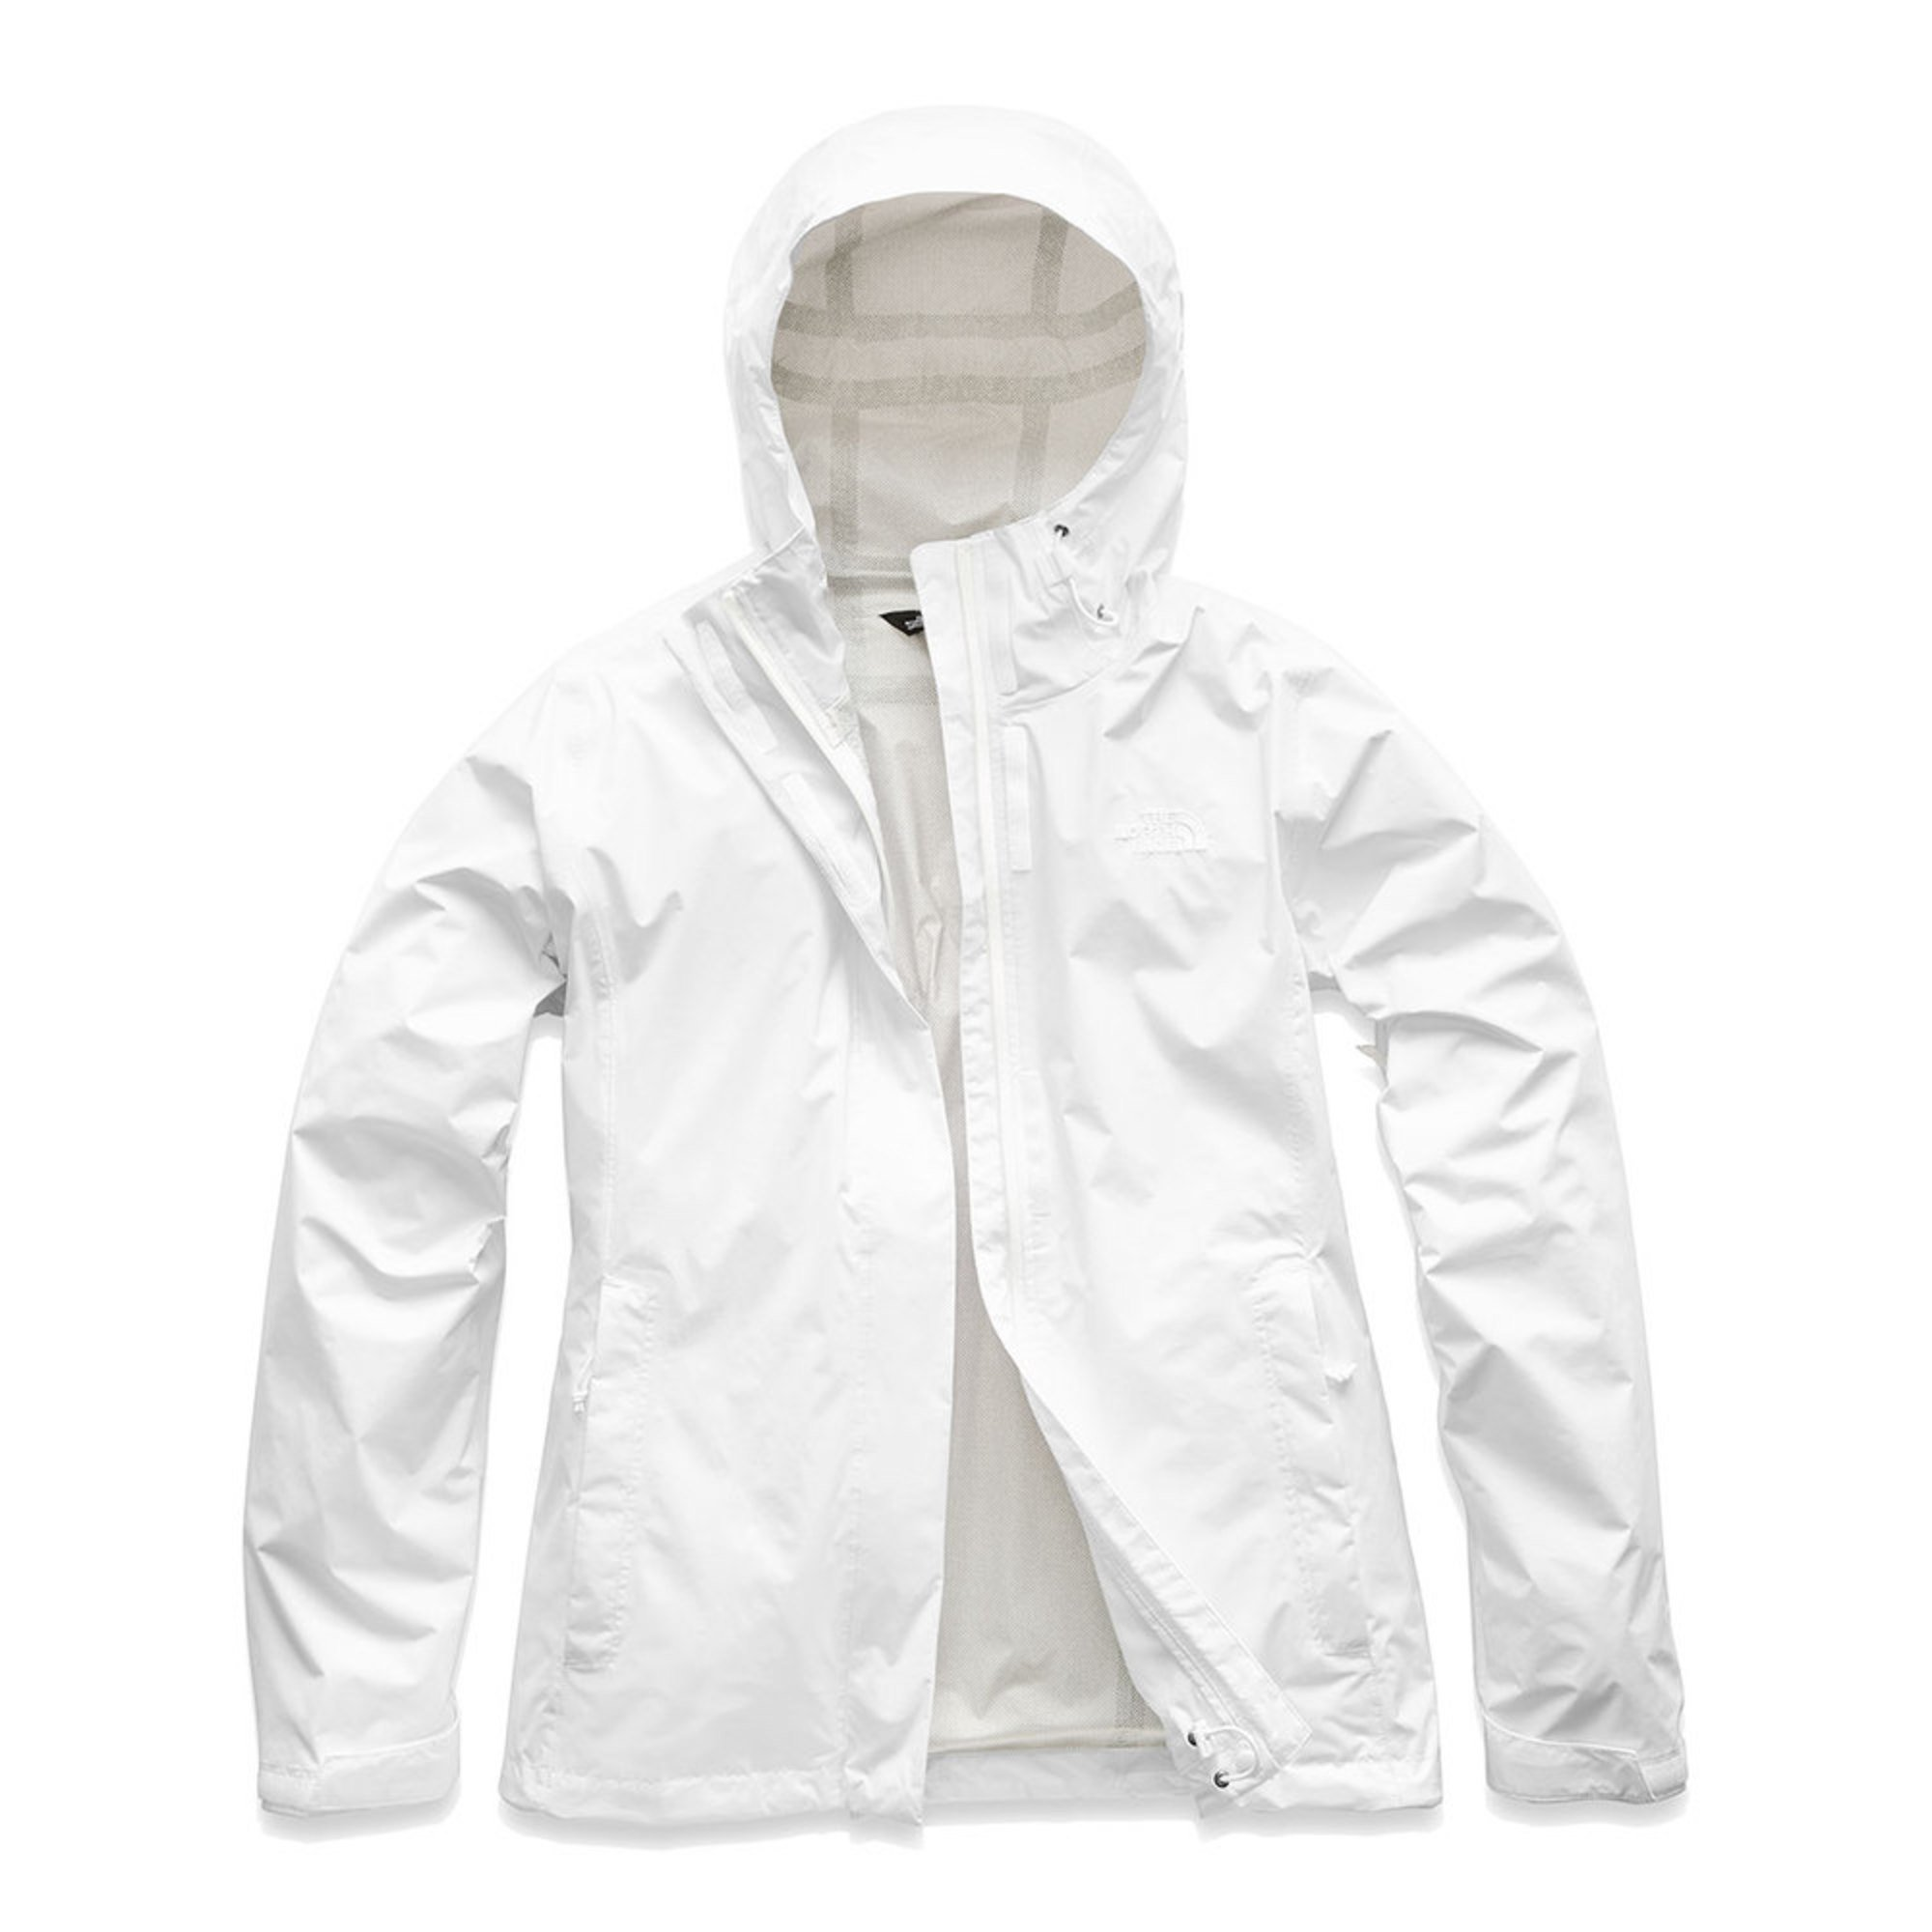 daf550be2 The North Face Women's Venture 2 Jacket